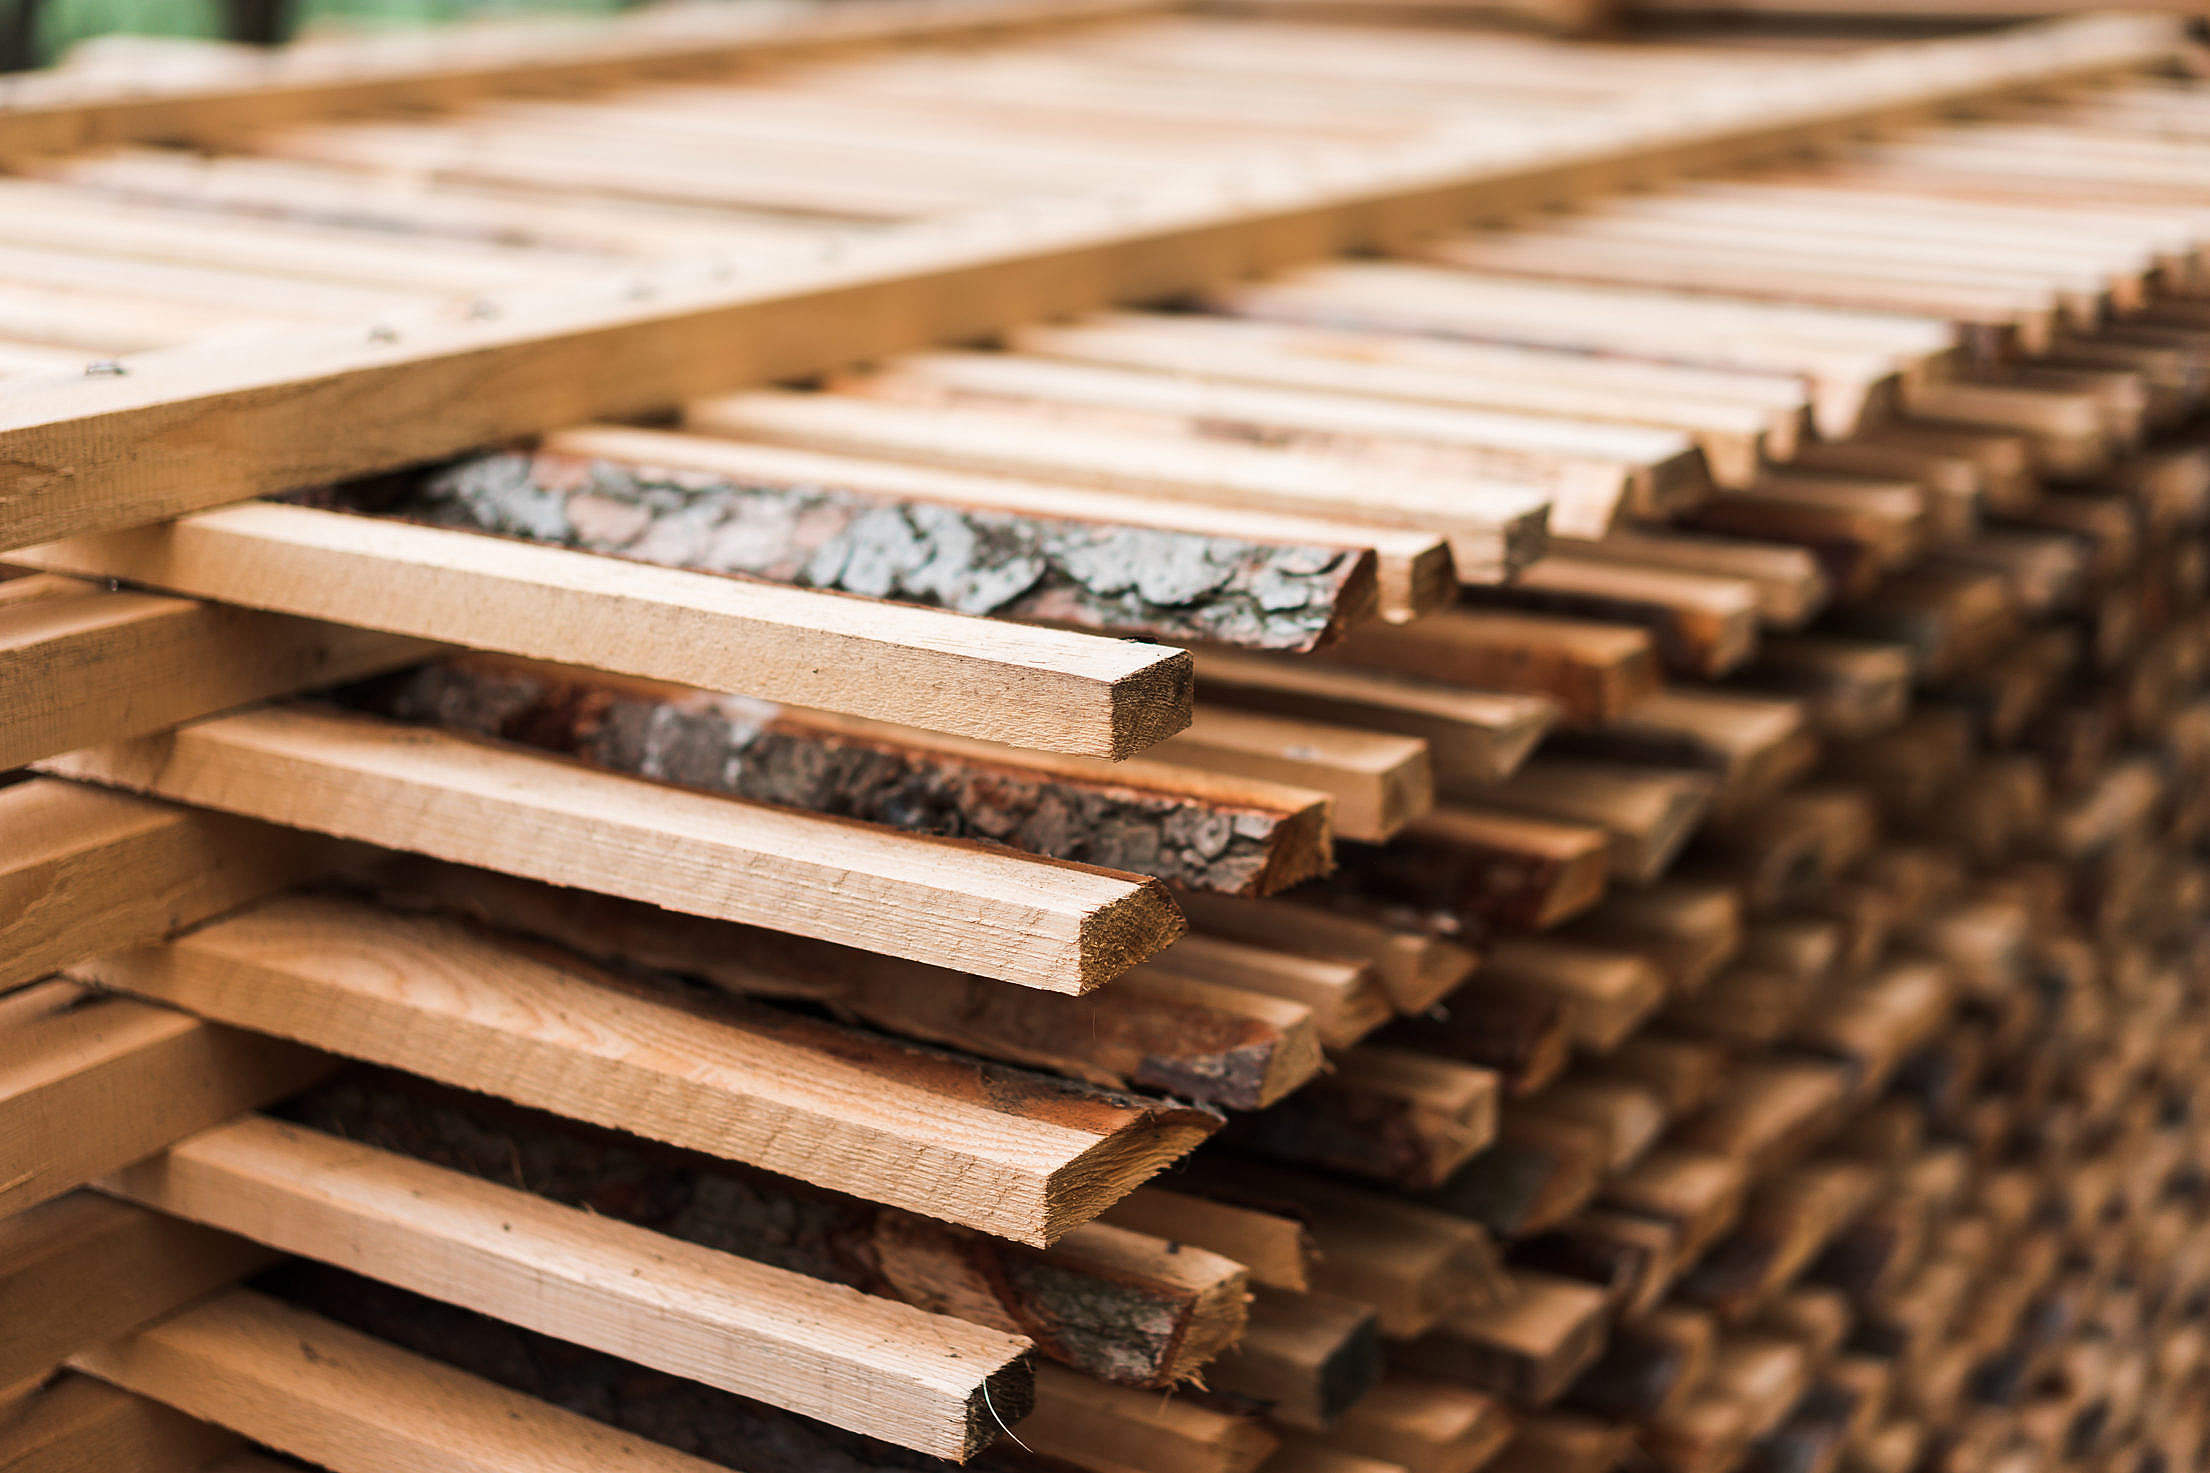 Freshly Cut Wood Stacked for Lumber Air Drying Close Up Free Stock Photo